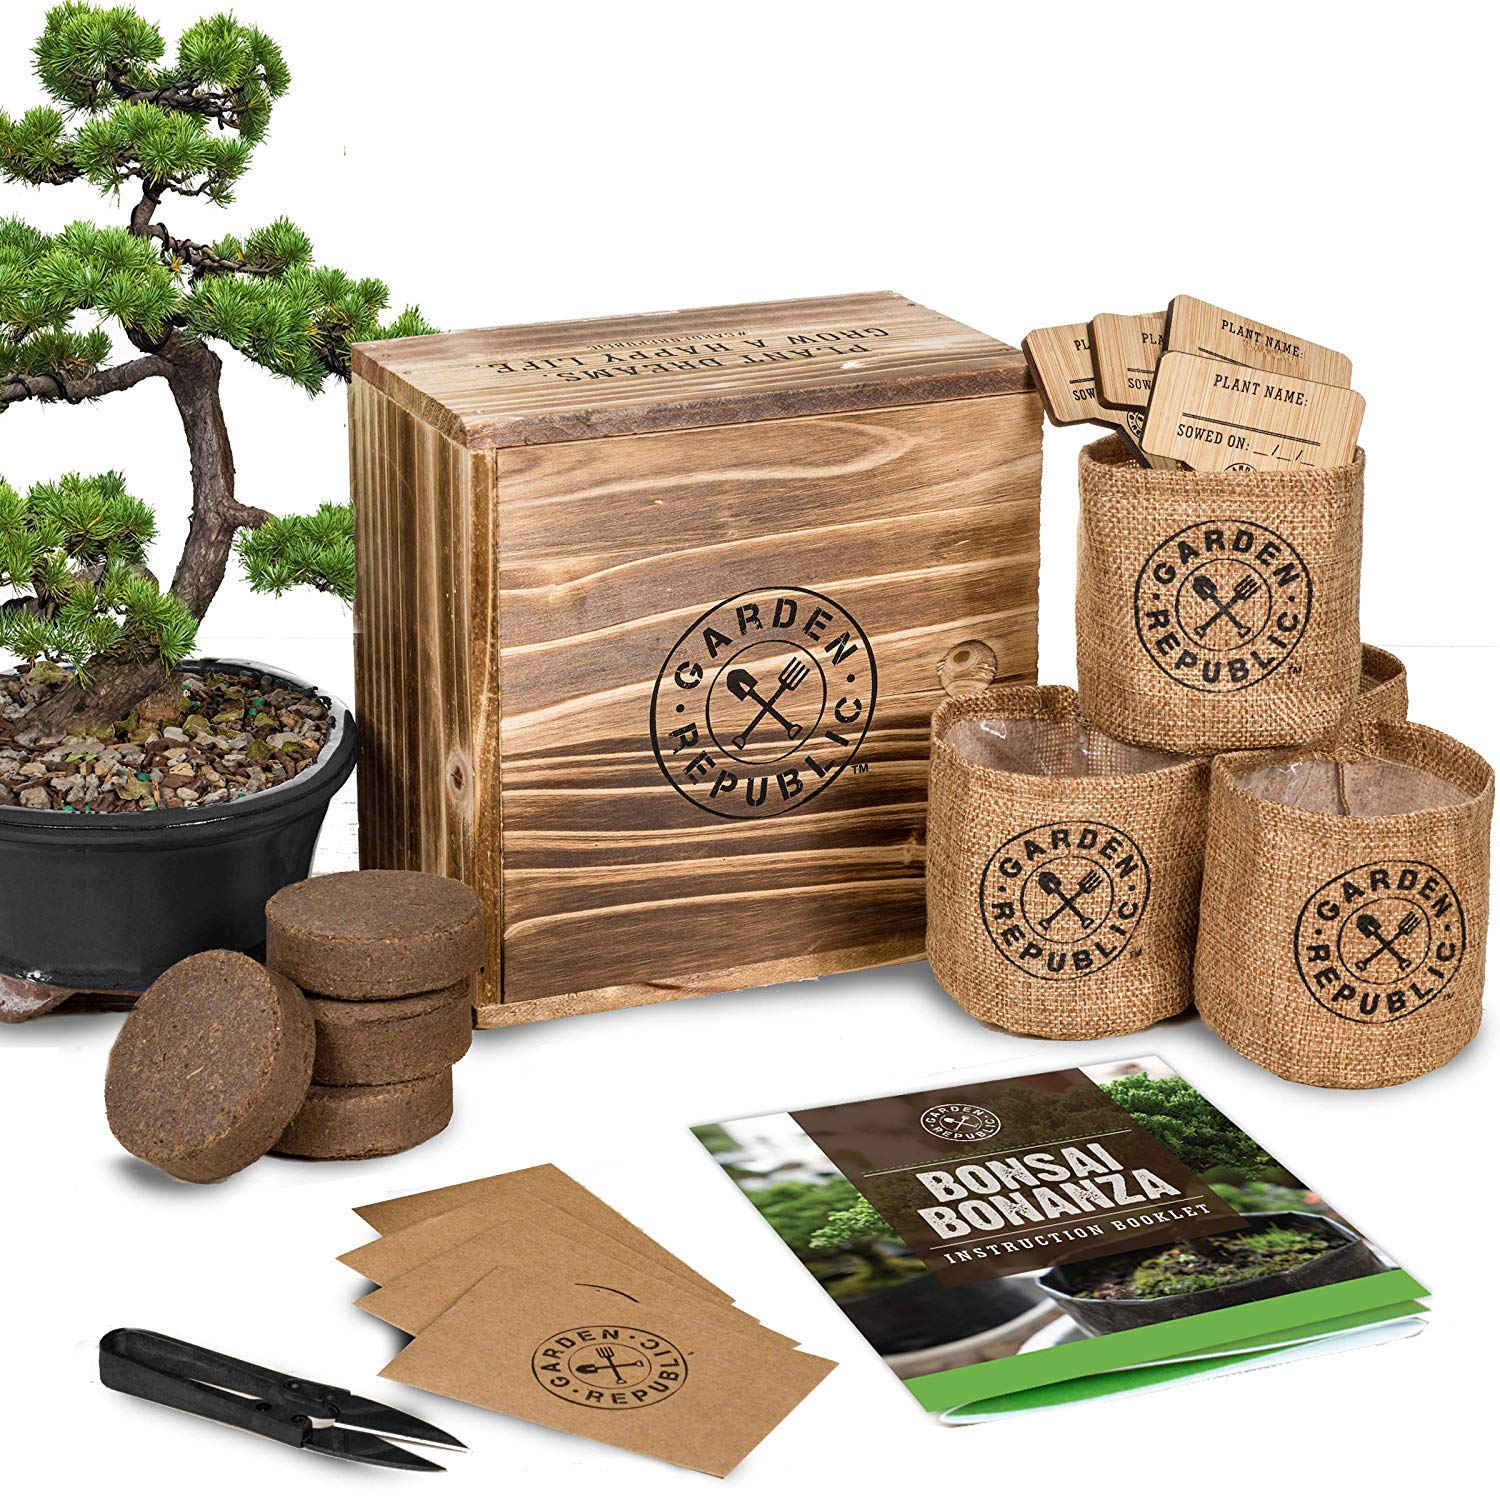 Birthday Gifts For 70 Year Old Man Bonsai Tree Starter Kit